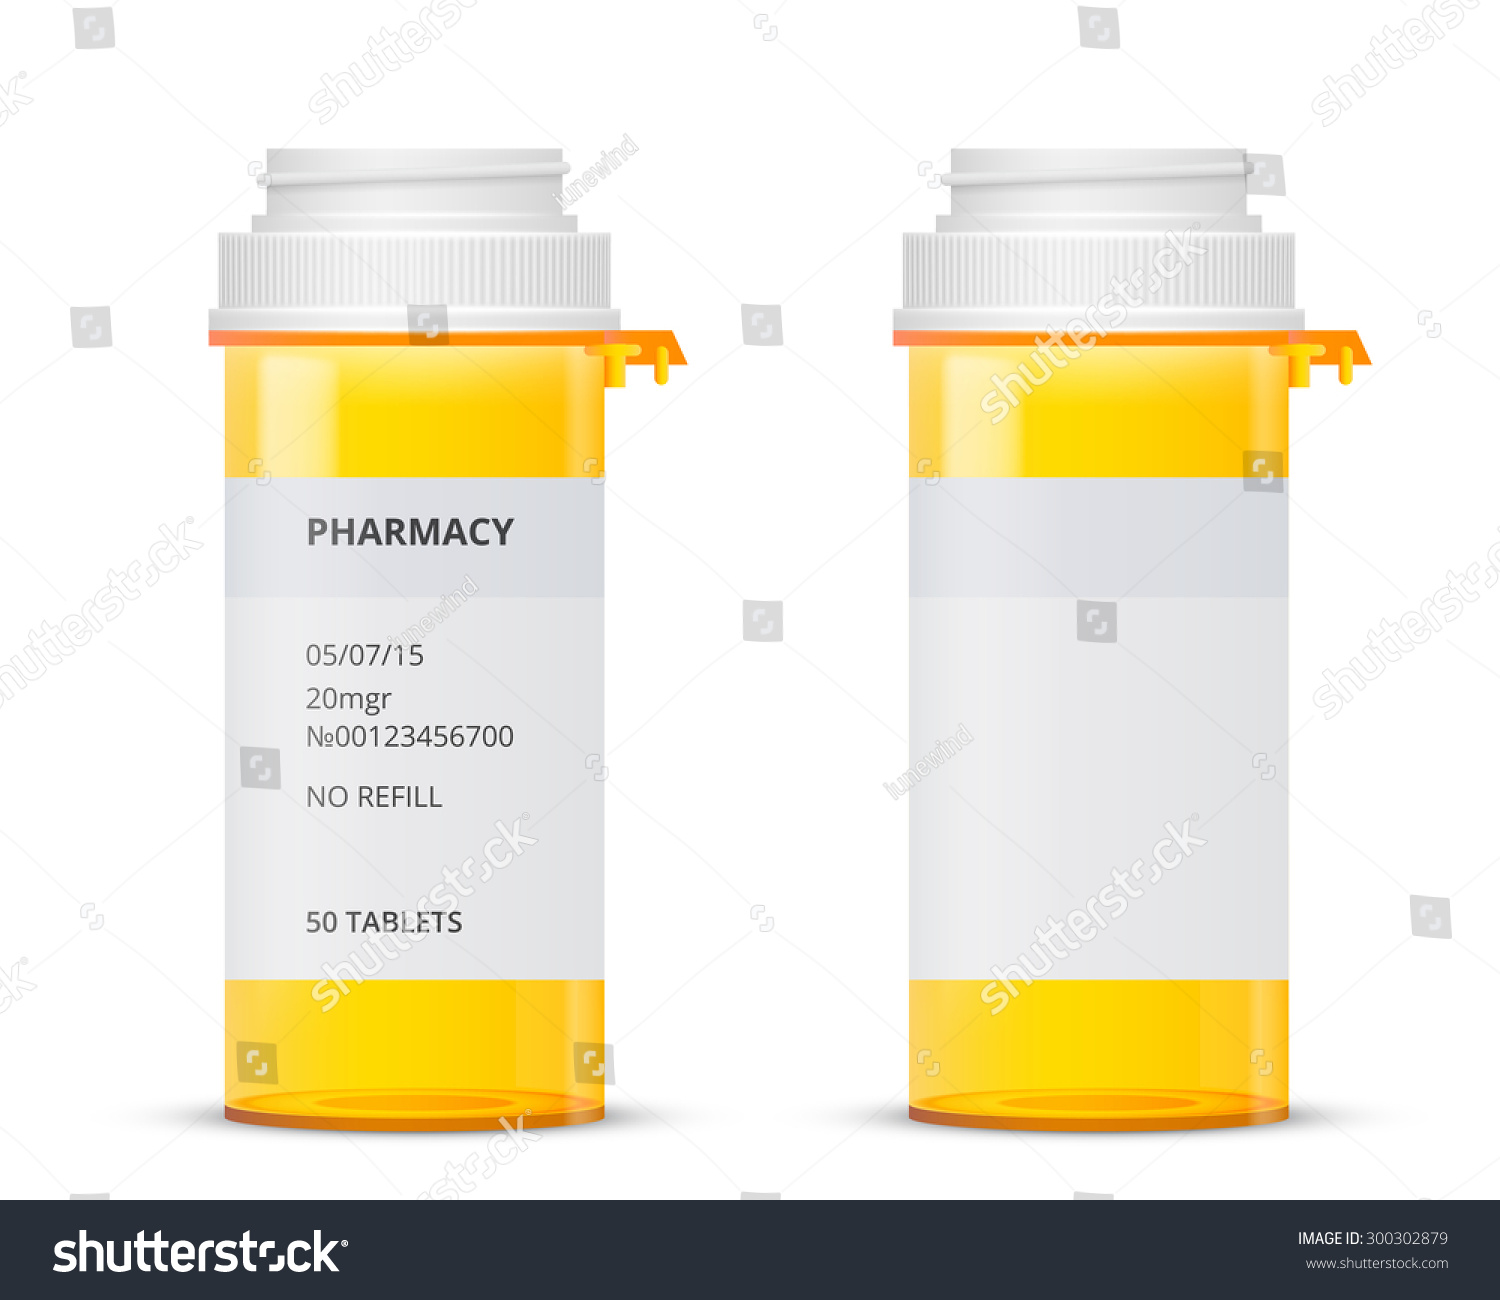 bottle prescription pill labels template vector stock vector 300302879 shutterstock. Black Bedroom Furniture Sets. Home Design Ideas